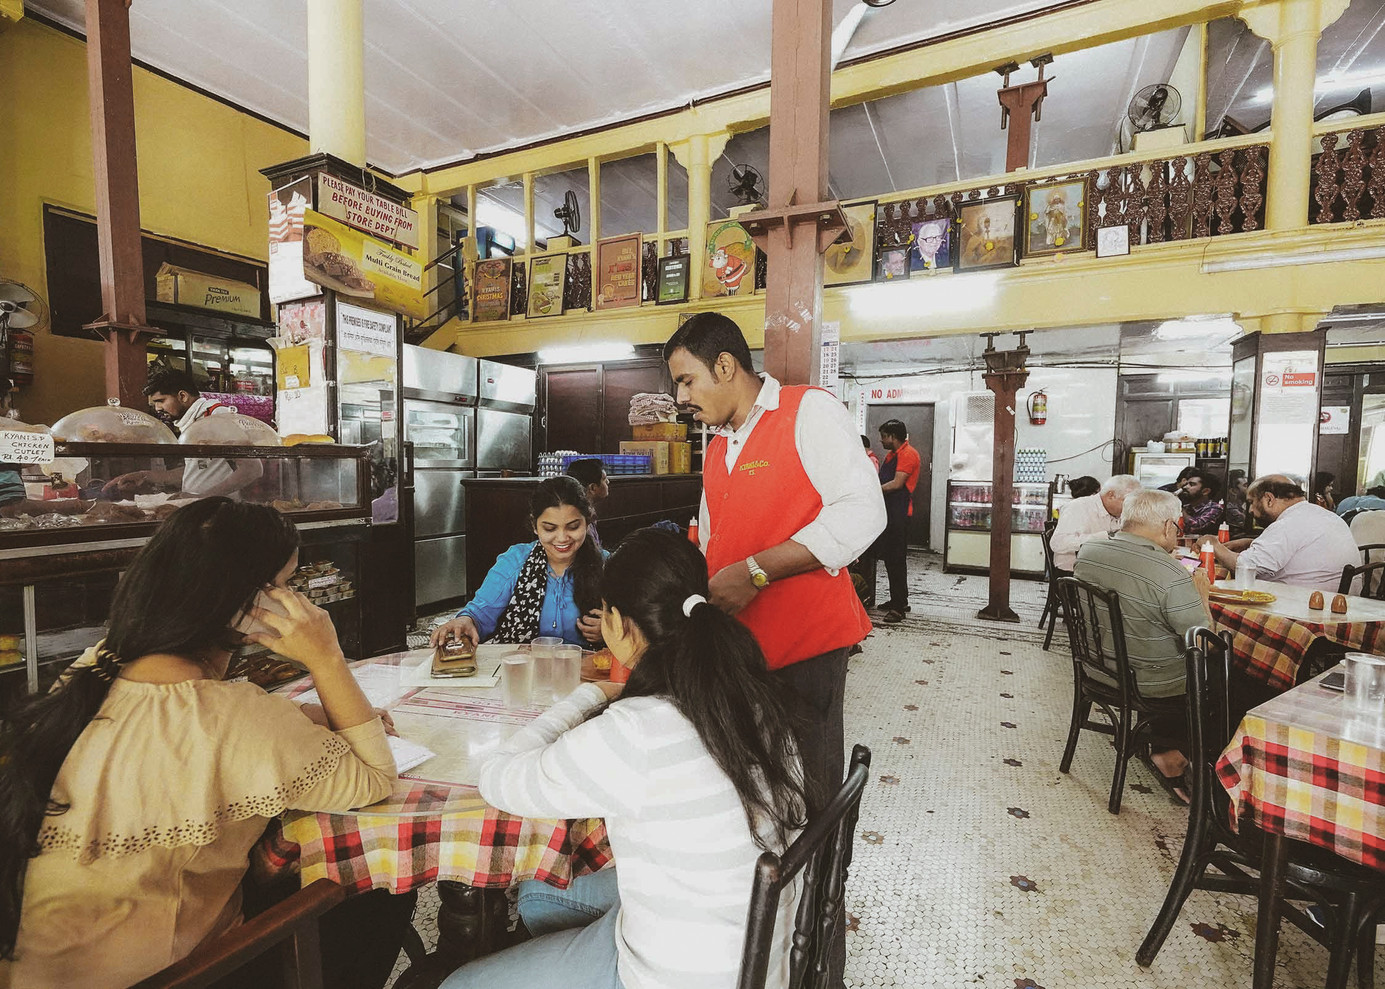 A waiter taking orders from enthusiastic customers at Kyani and Co. The eatery was established in 1904, which makes it the oldest surviving Irani cafe in Mumbai; it is now listed as a heritage monument. Kyani is known for the period ambience, showcasing high ceilings with colonial-style fans, tiled floors and Italian-marble-topped tables. The tables are complemented with vintage bentwood or bent-cane chairs.